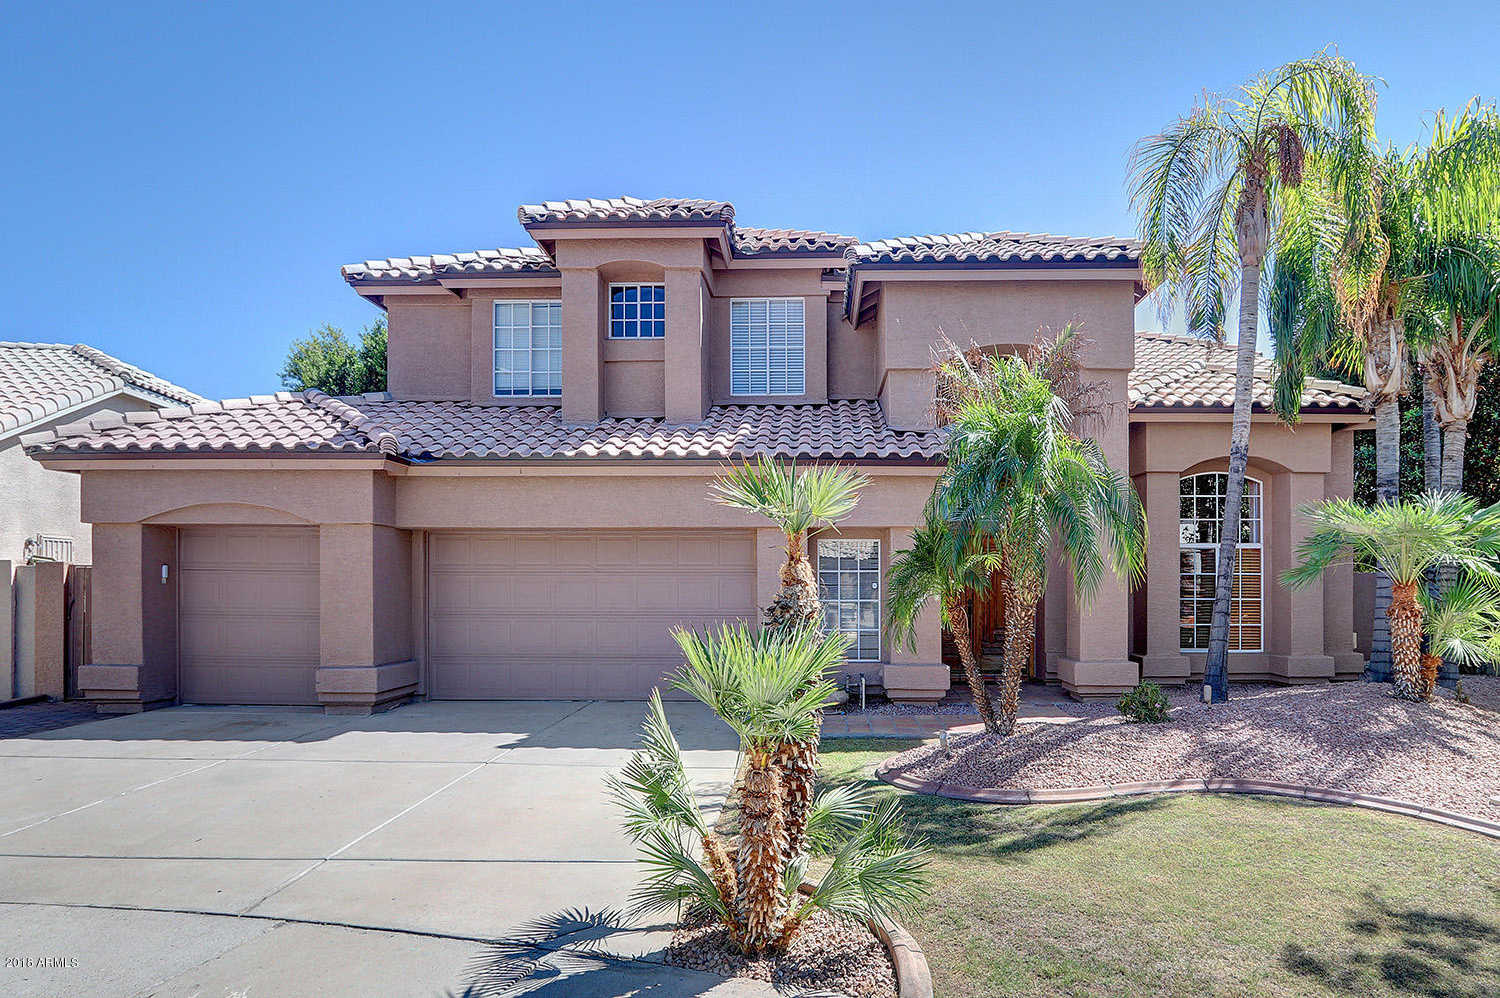 $450,000 - 4Br/3Ba - Home for Sale in Top Of The Ranch, Glendale